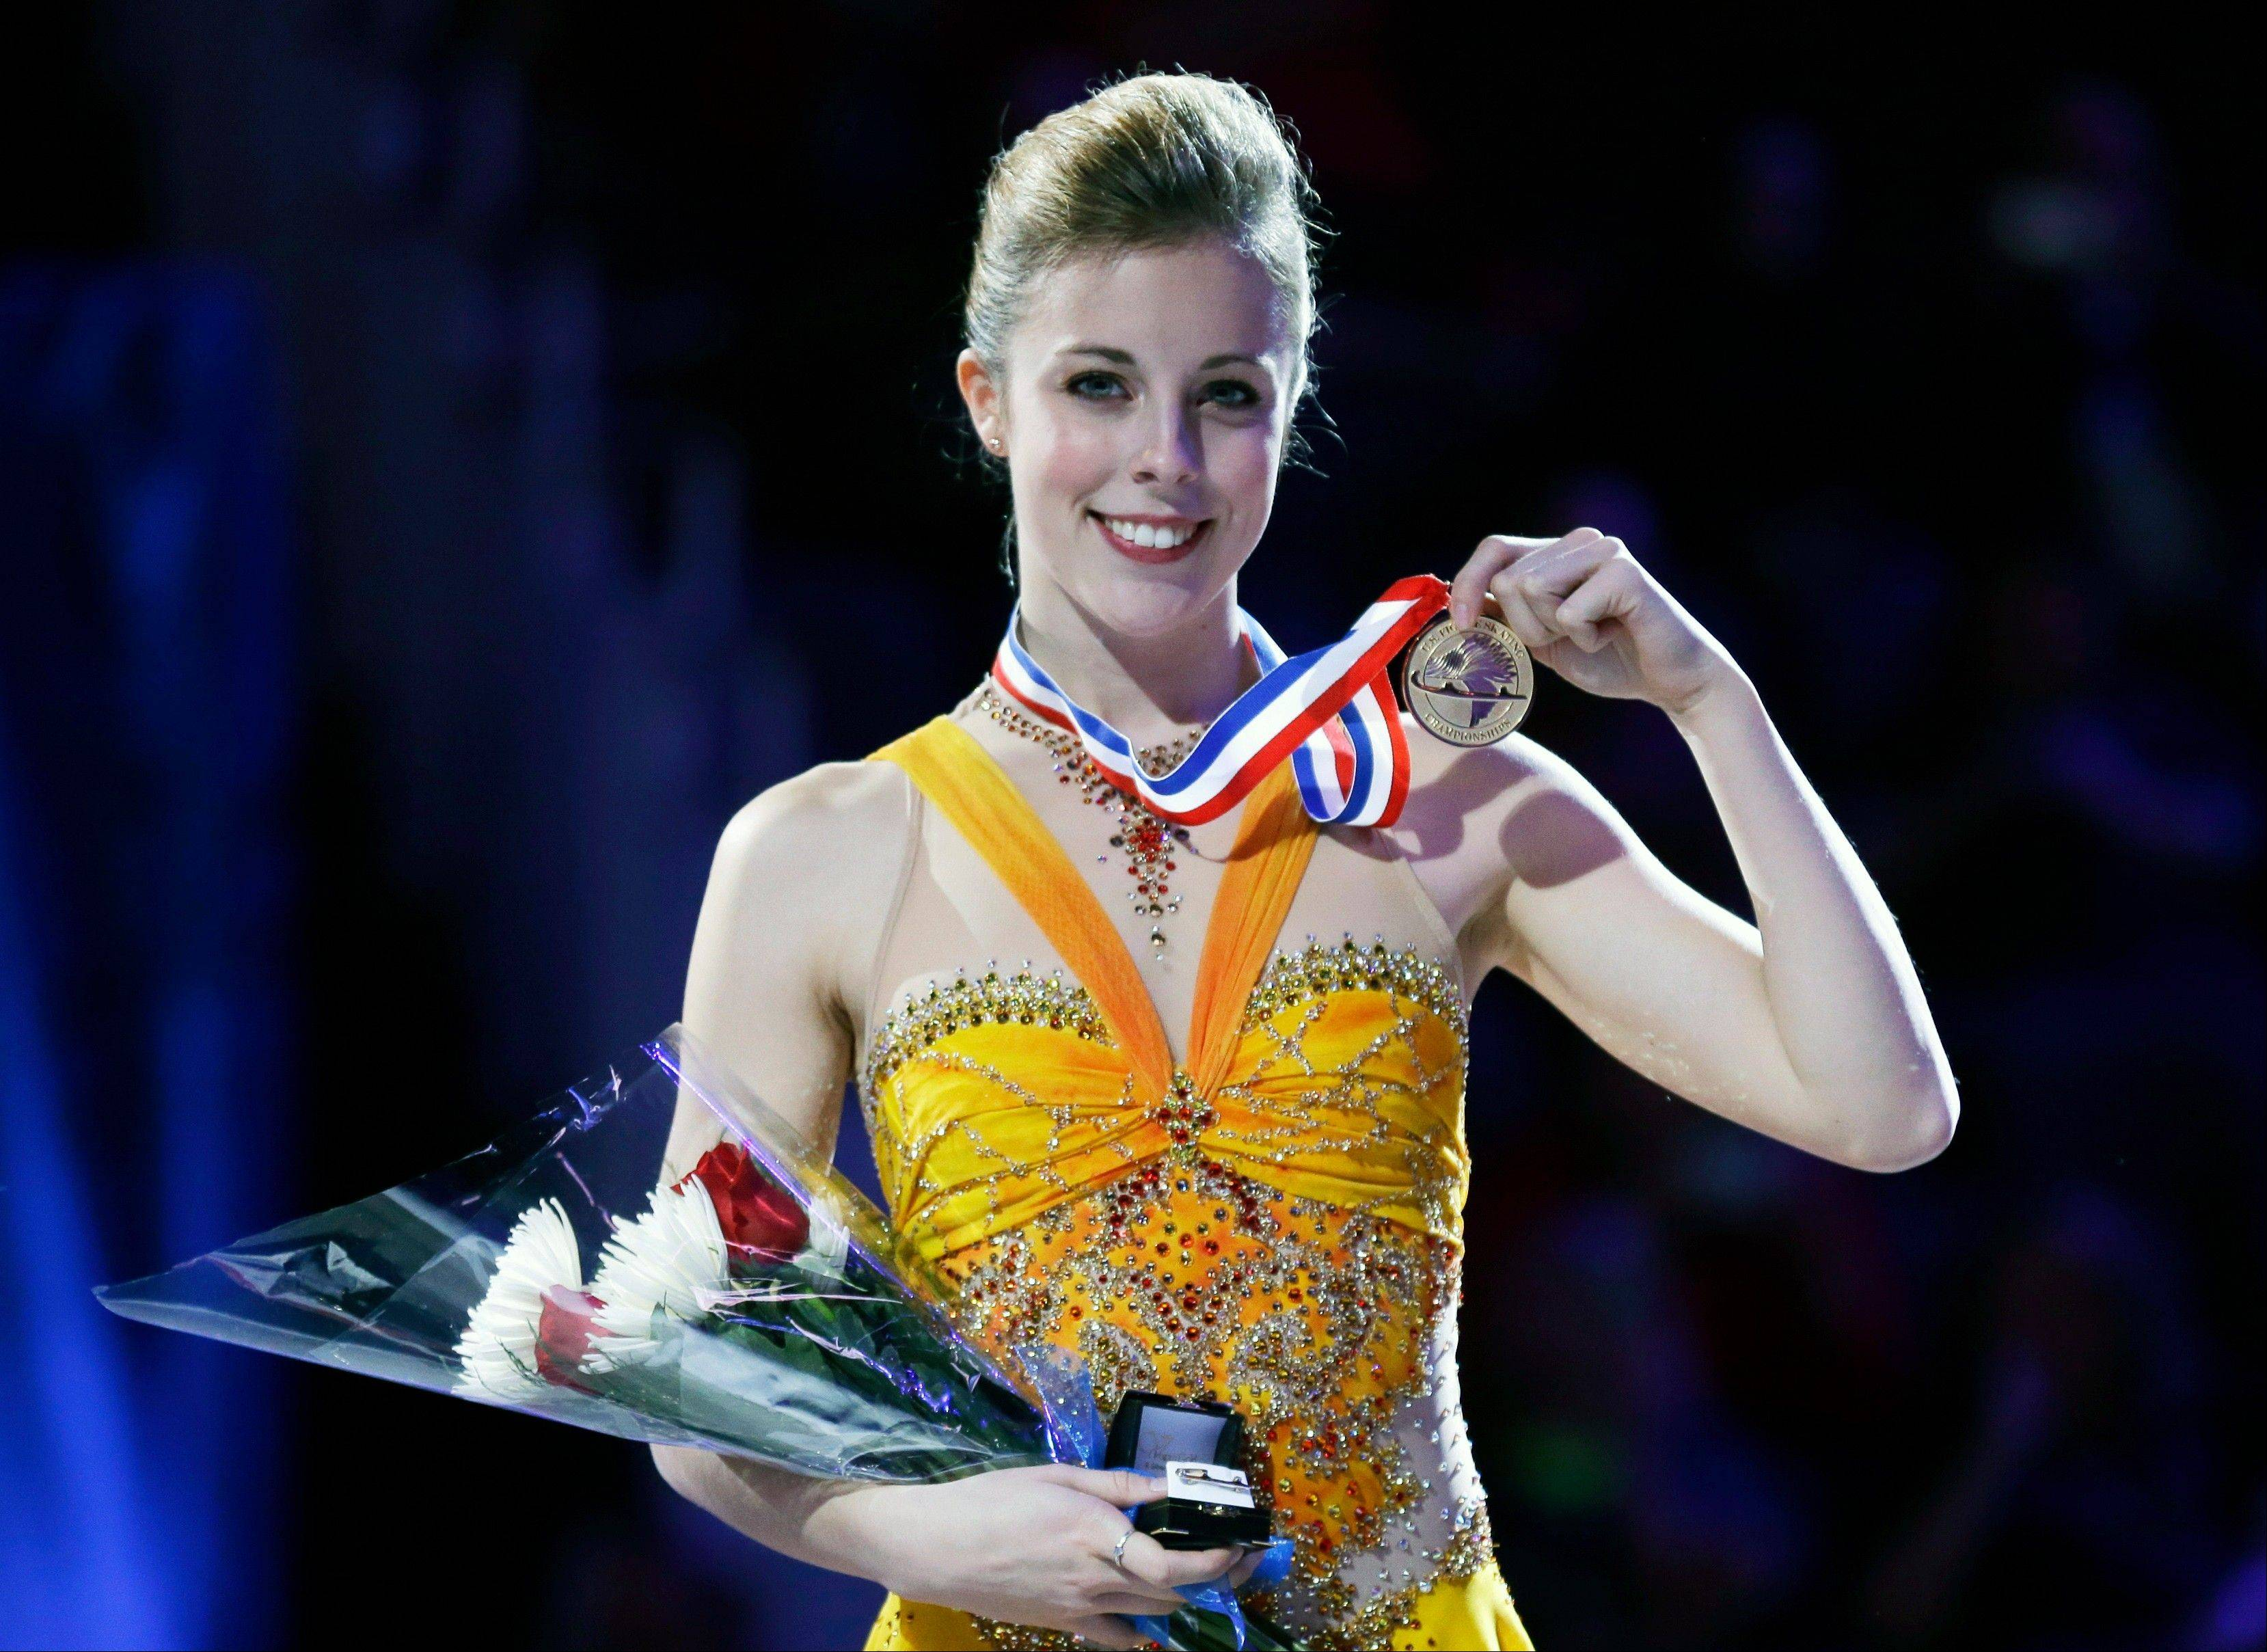 Ashley Wagner holds the gold medal after winning the senior ladies championship at the U.S. figure skating championships on Saturday.